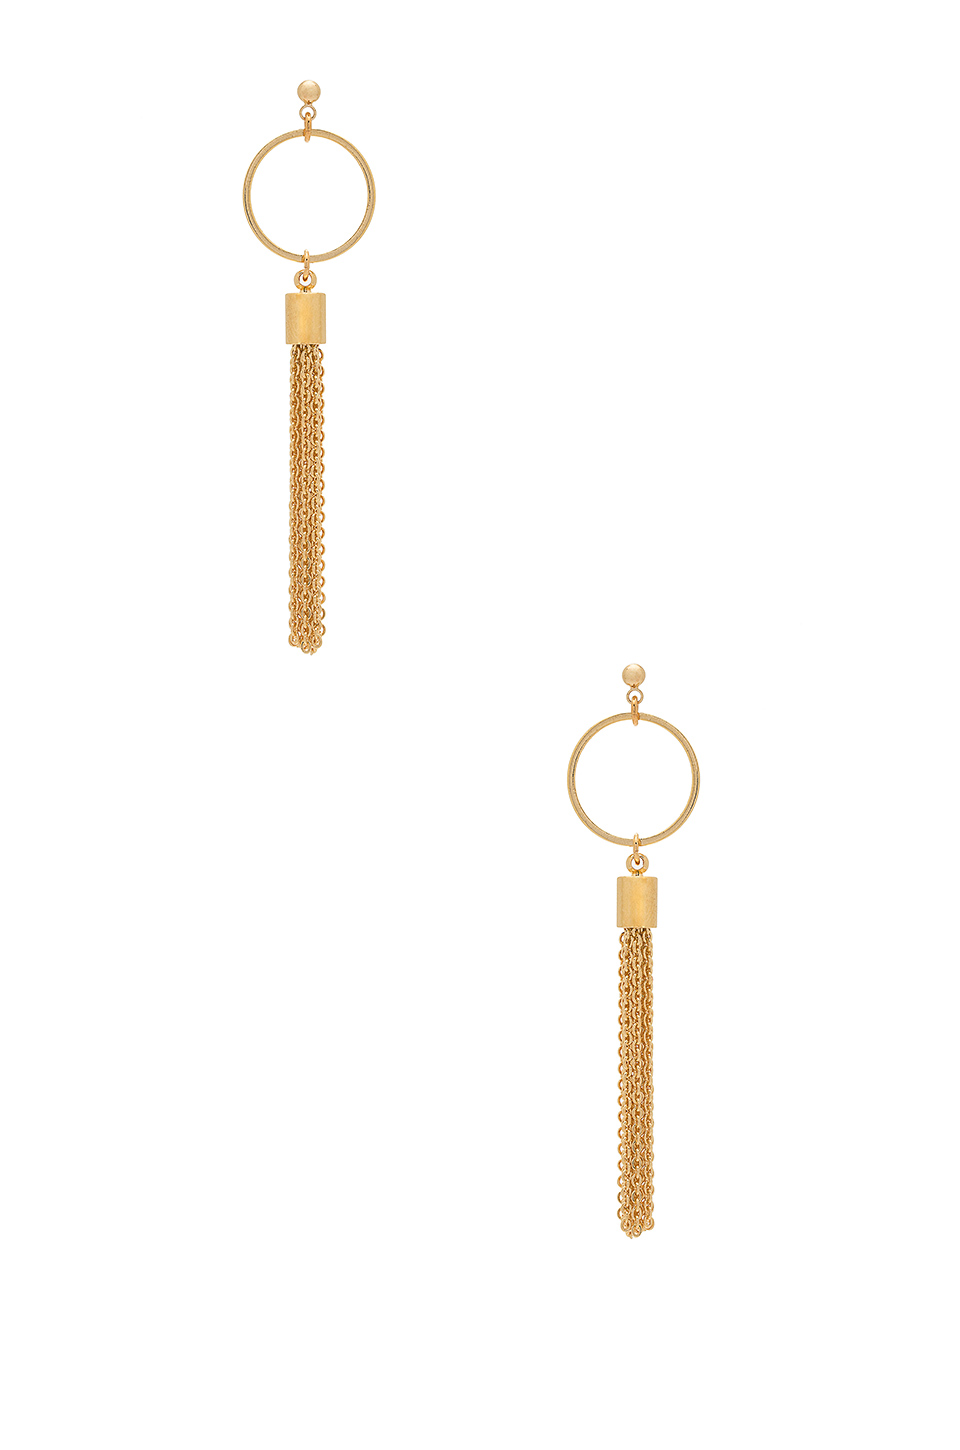 FIVE AND TWO 'DEVON' EARRING